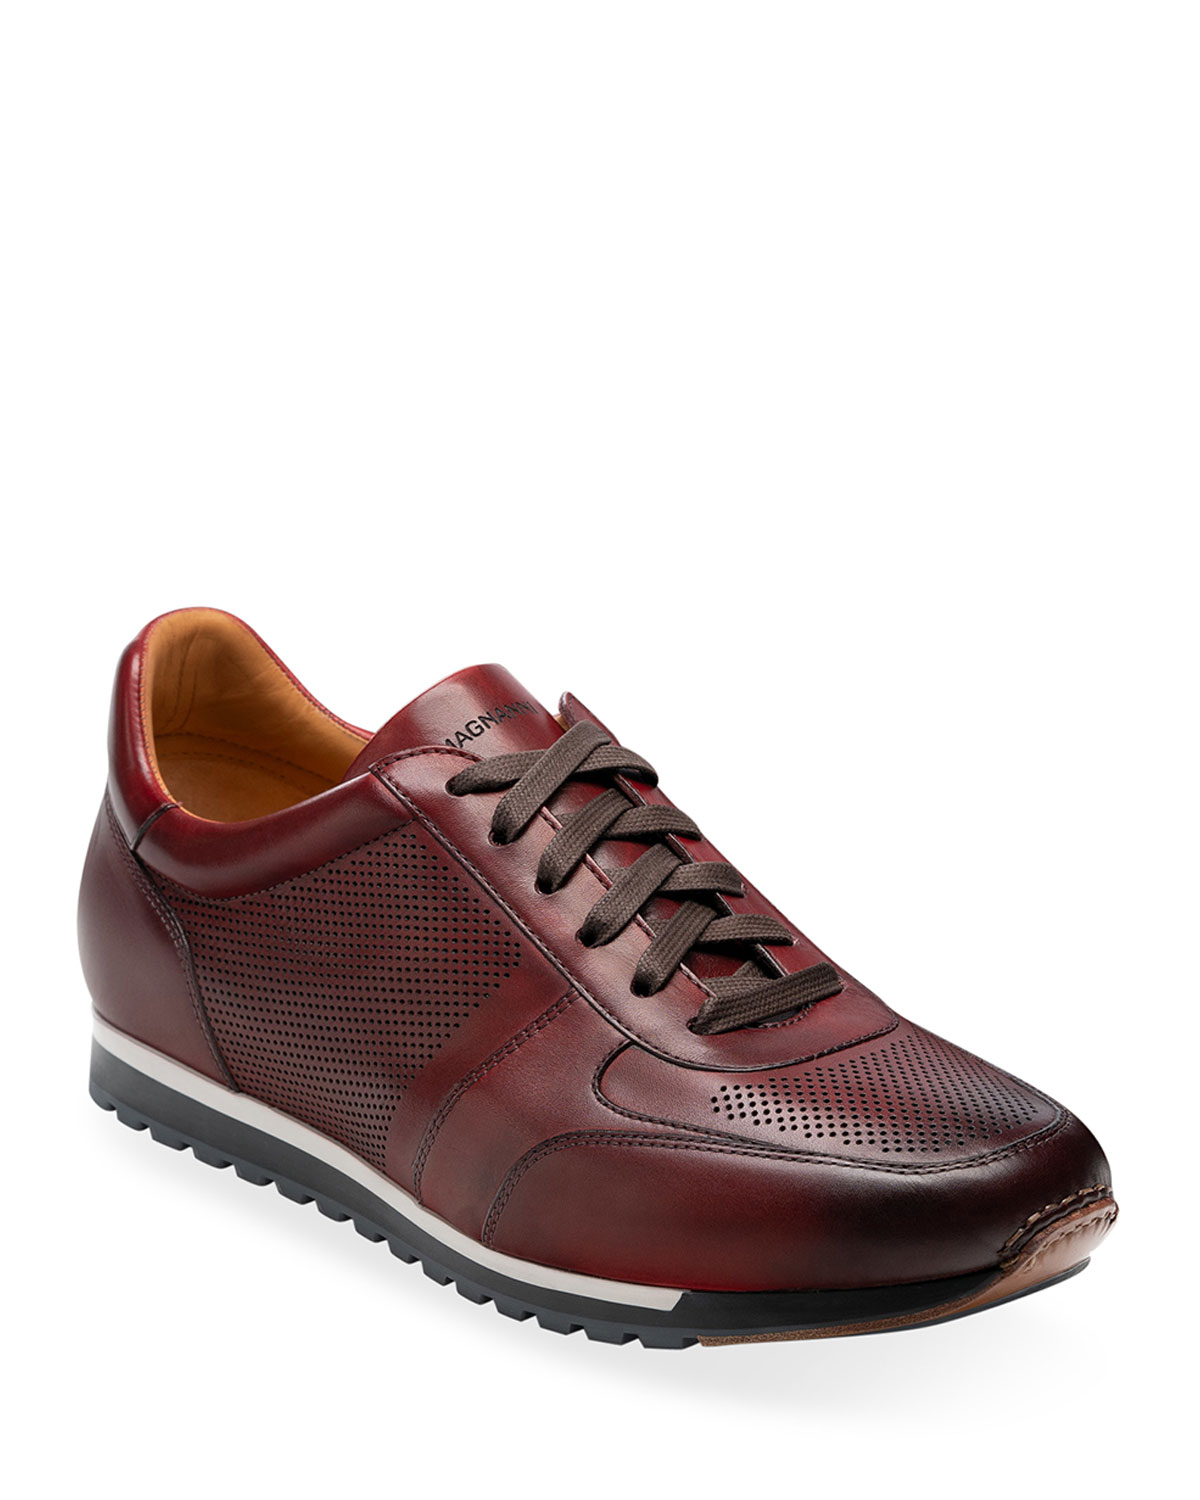 Men's Burnished Leather Trainer Sneakers